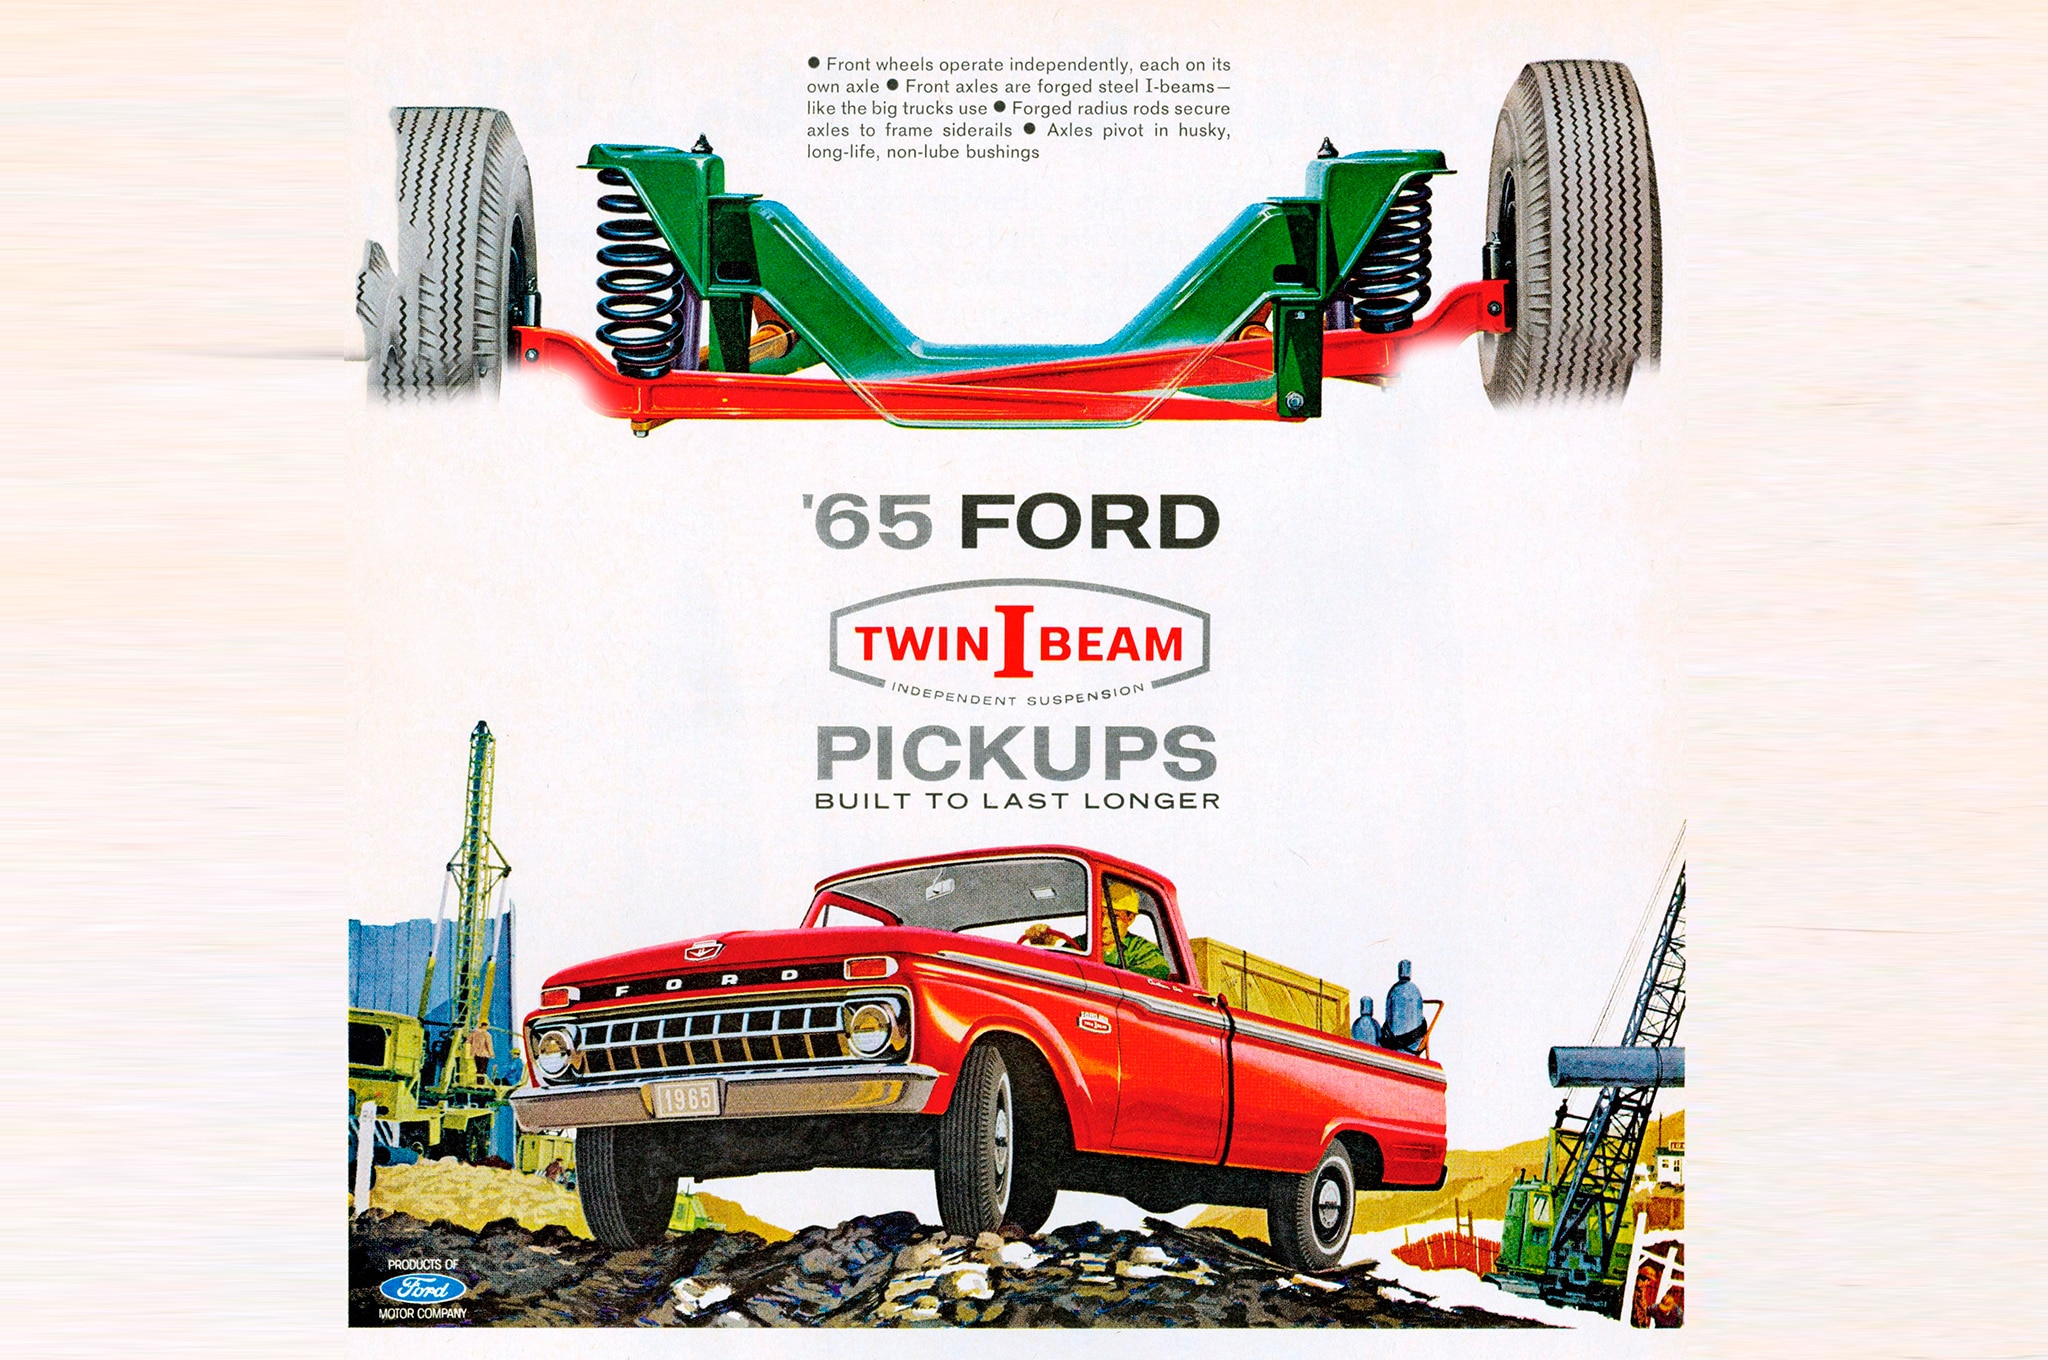 Ford celebrates 100 years of trucks